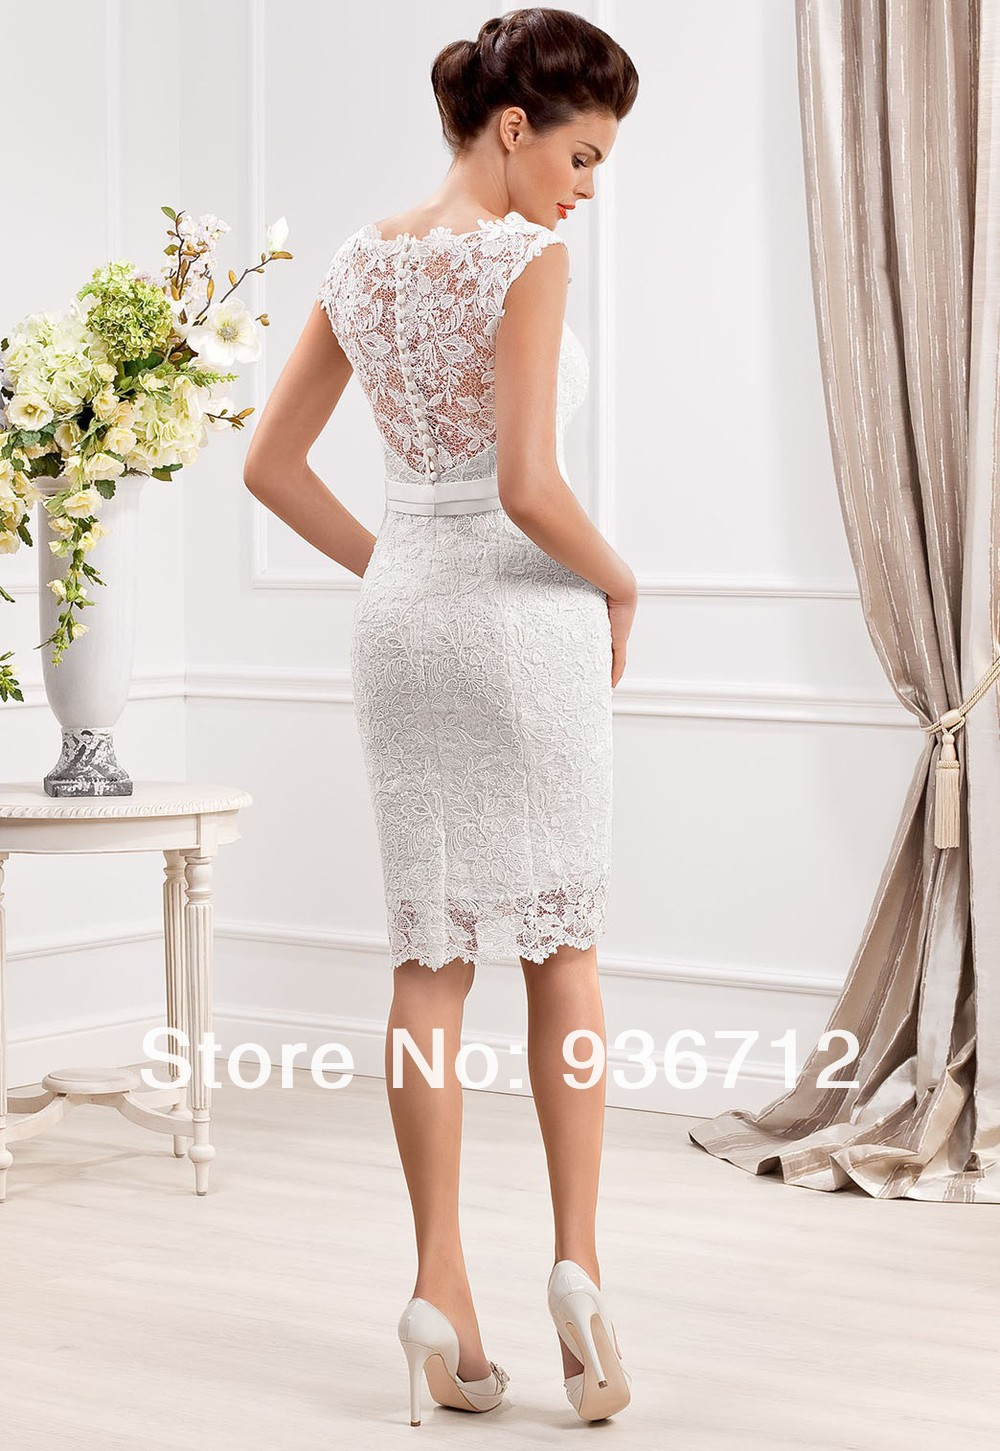 Short Designer Wedding Dresses lingerie wedding dress